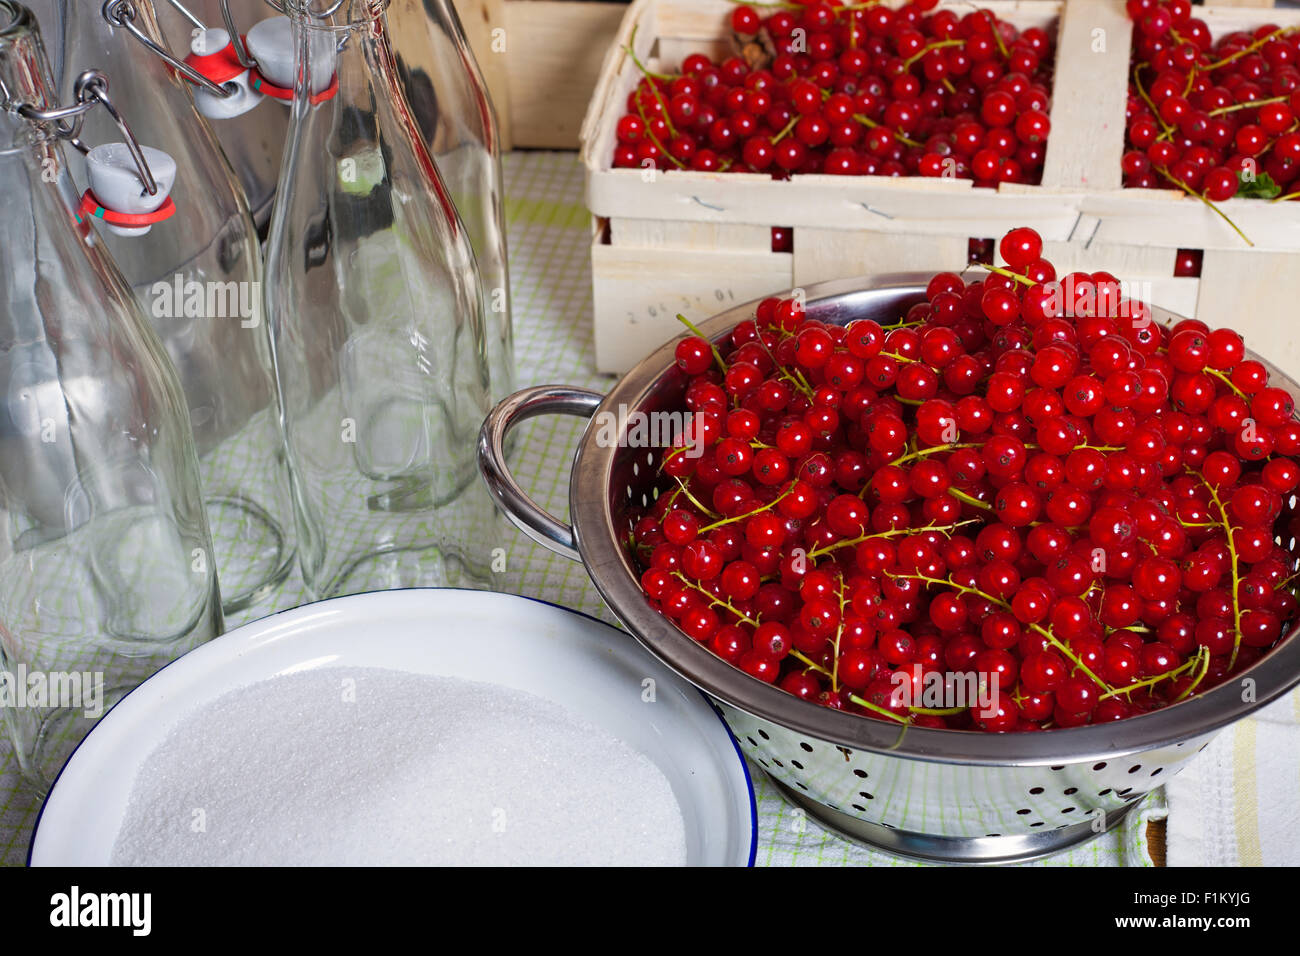 Red ripe currants in a colander, sugar in a bowl and Swing top bottles in the background - Stock Image